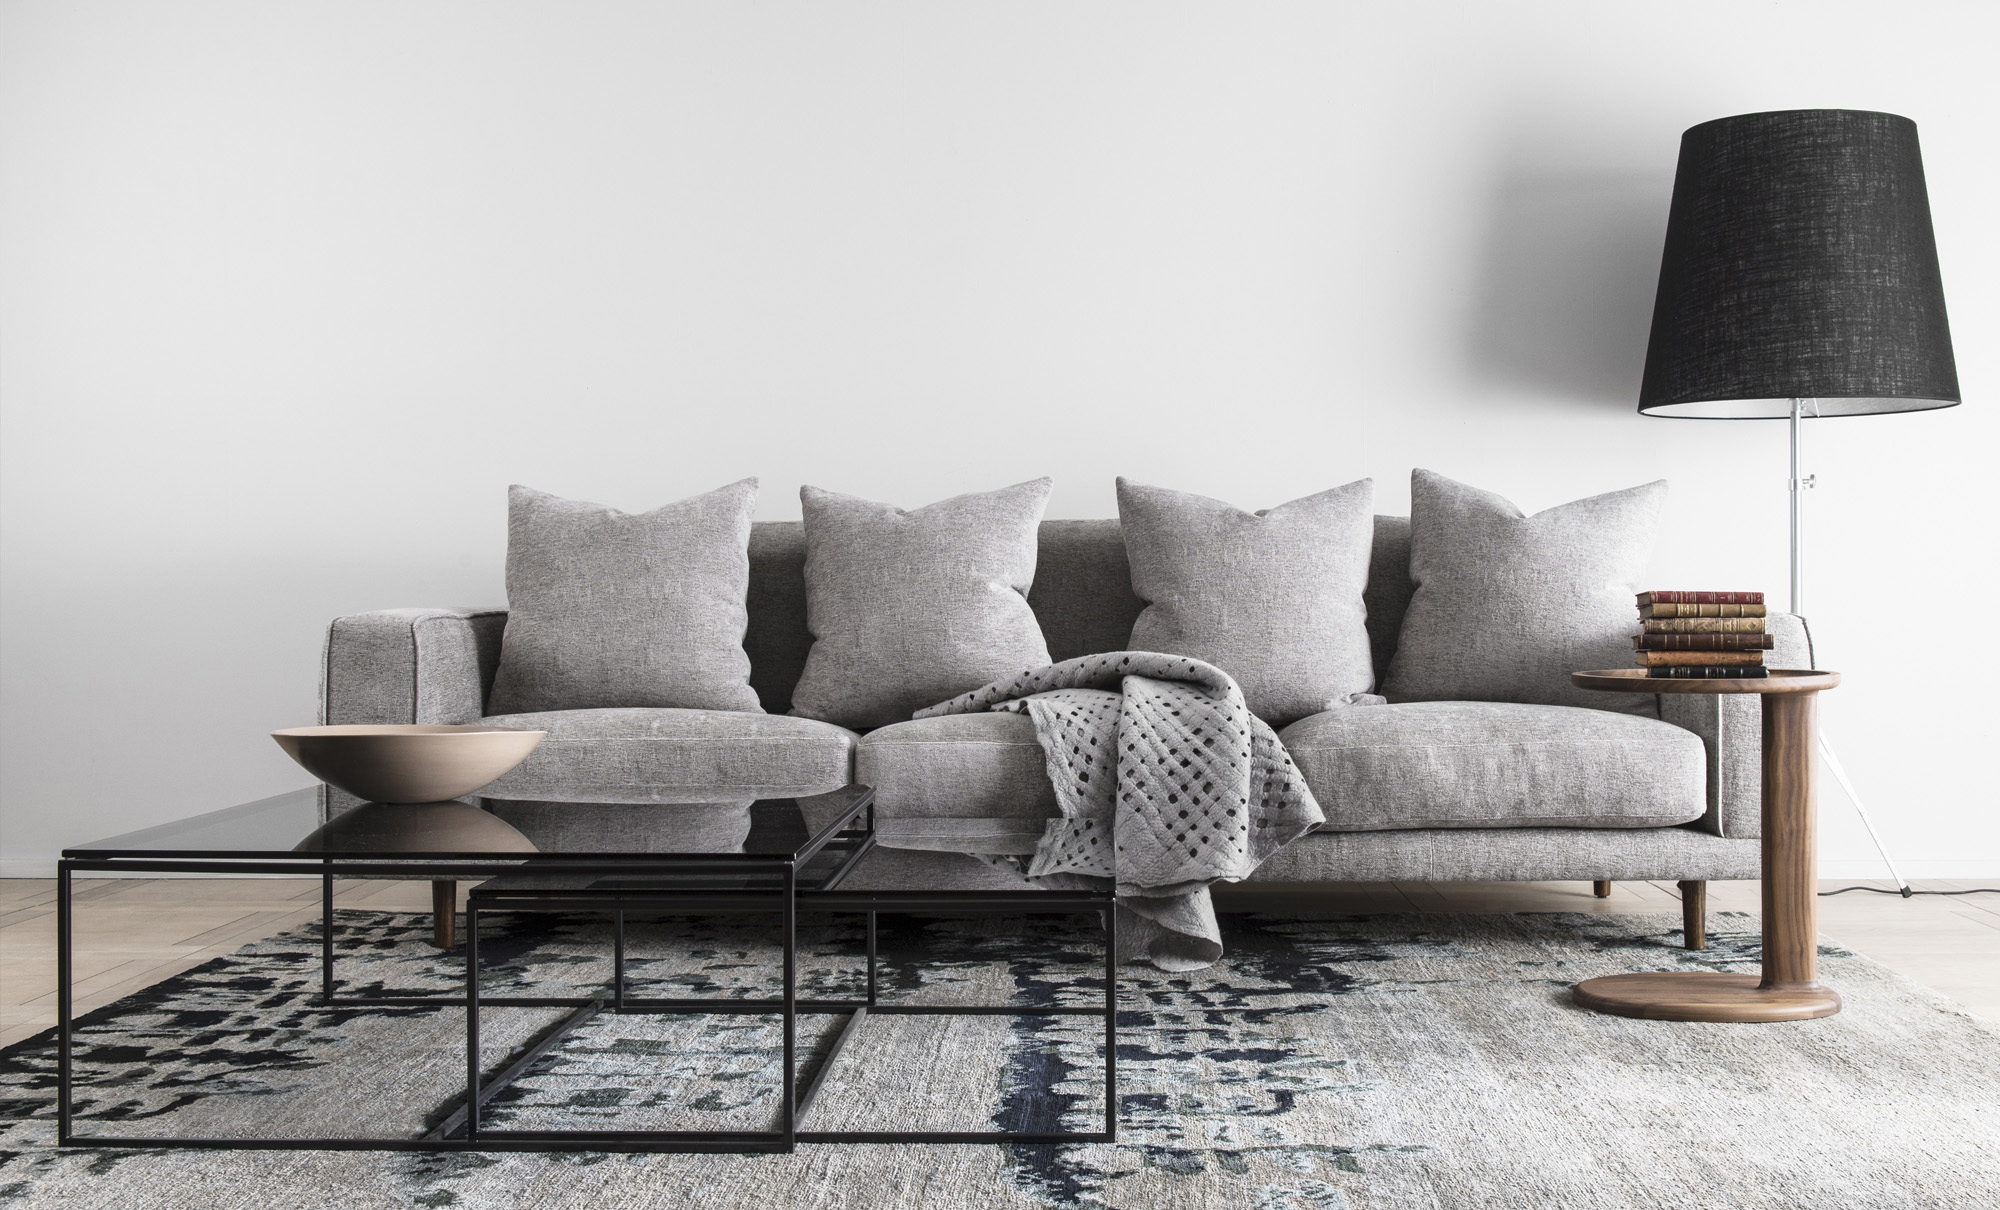 interio sofa charlie beds suppliers spain fanuli furniture